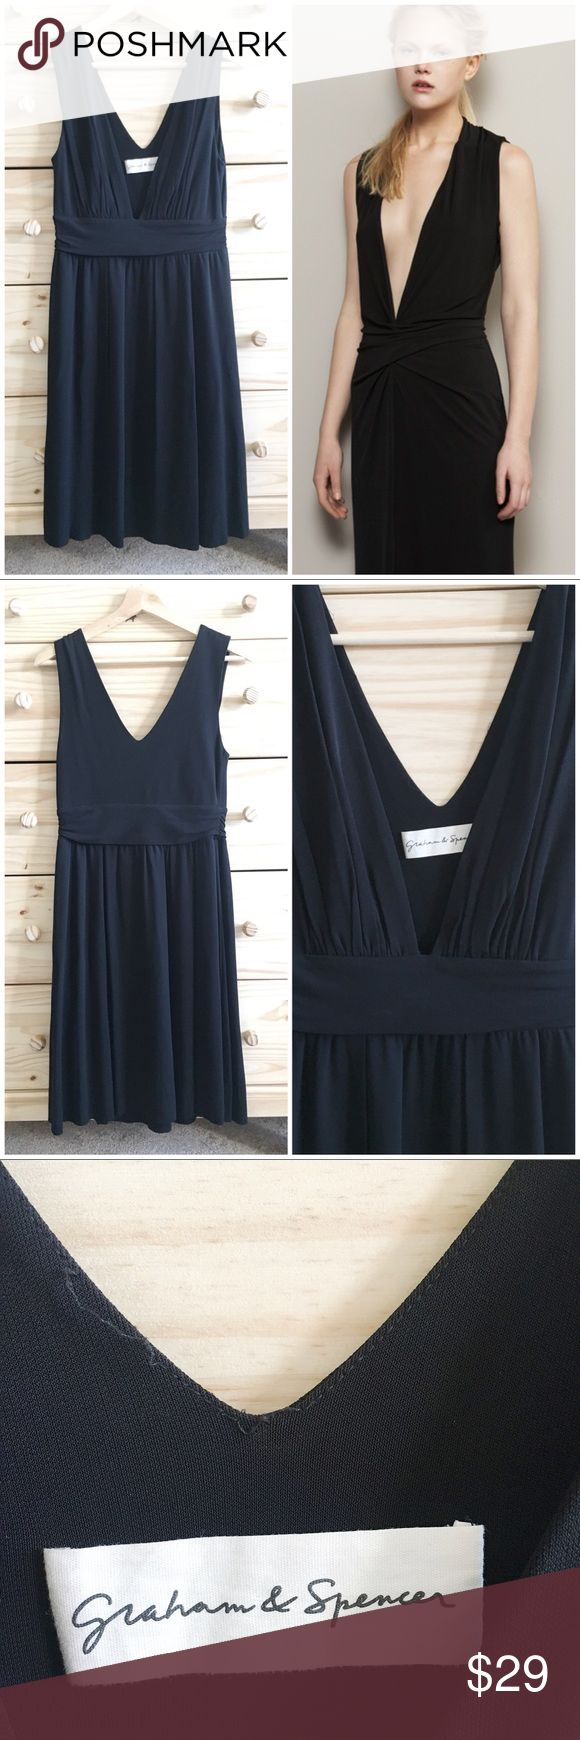 Graham & Spencer Deep V Neck Black Cocktail Dress Stunning black cocktail dress from Graham & Spencer in a classic black. Perfect little black dress for a holiday occasion or other. A few loose threads on inside back, they don't show when dress is on. Please see pics. Great condition otherwise. Dress in stock photo is not exact dress but similar cut from G&S to show fit. Graham & Spencer Dresses